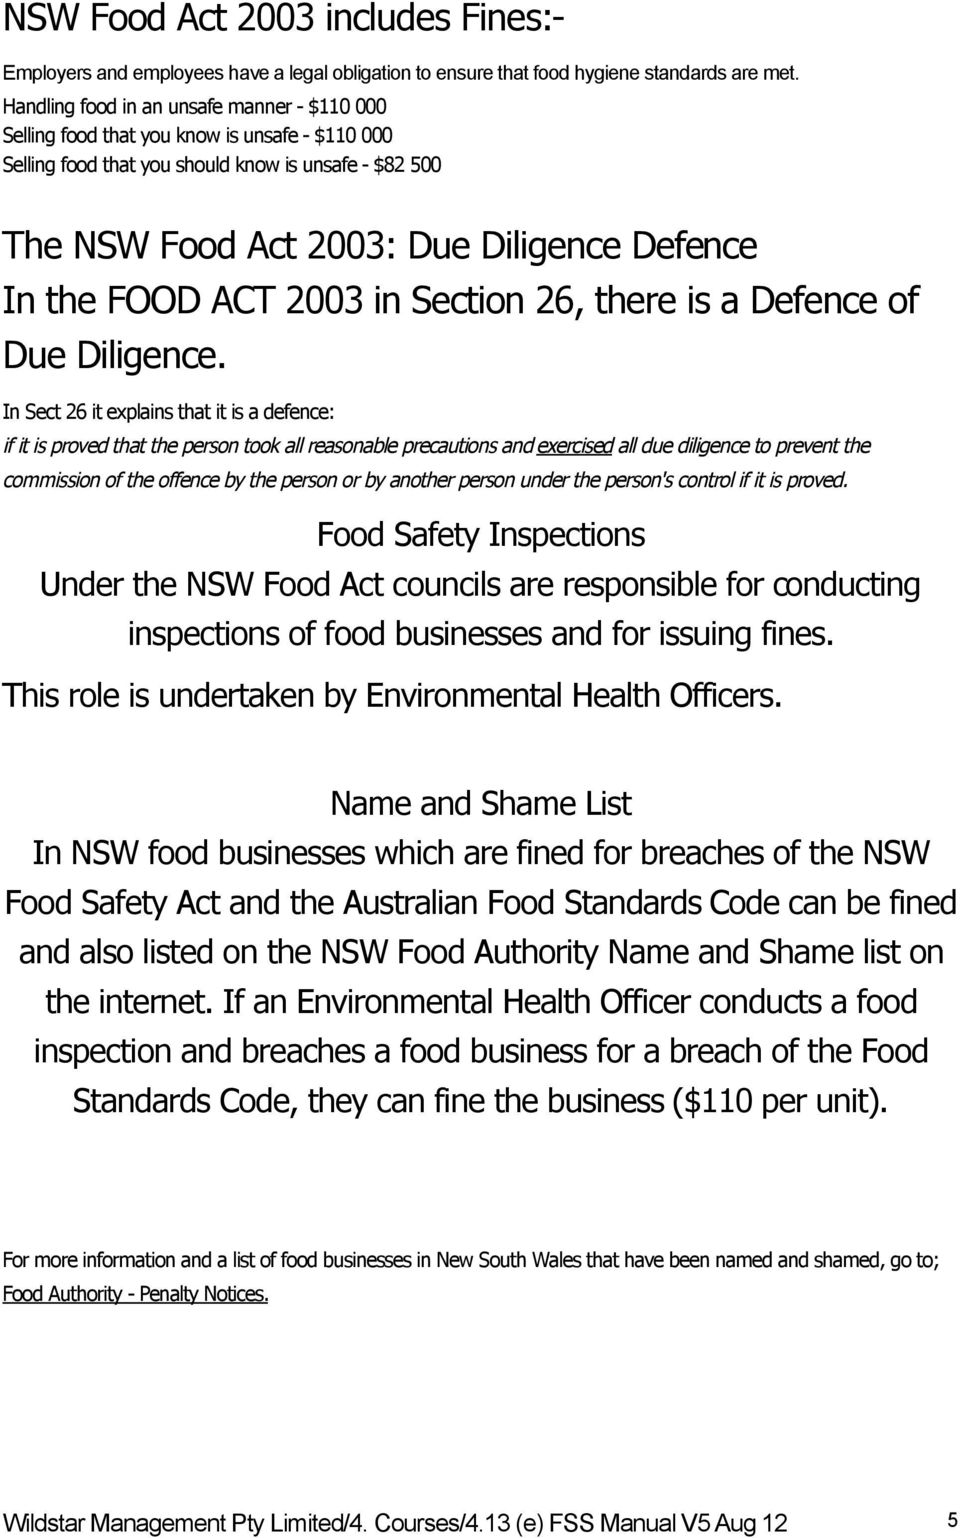 FOOD ACT 2003 in Section 26, there is a Defence of Due Diligence.